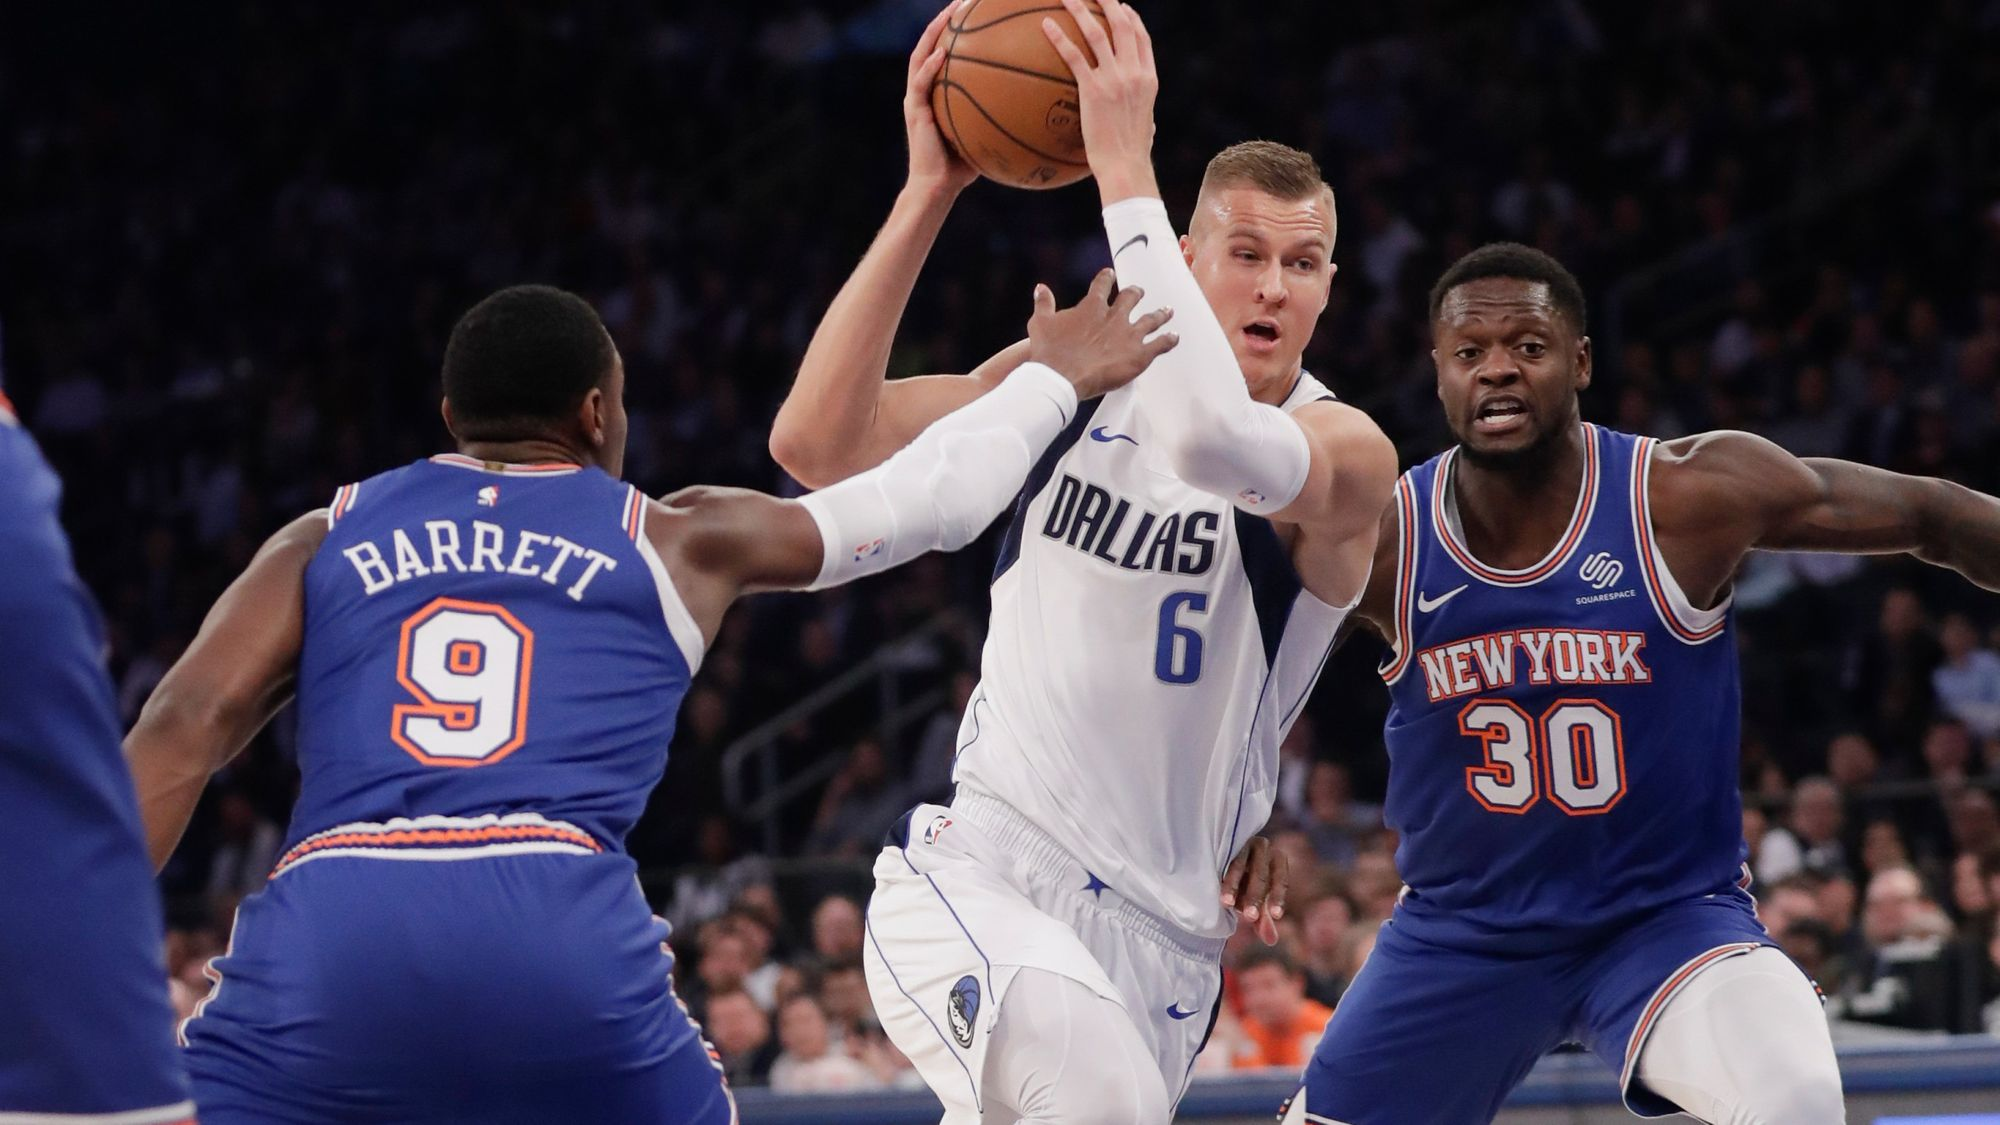 NBA Daily Rundown: Porzingis Gets Hostile Welcome And A Loss In Return To Madison Square Garden